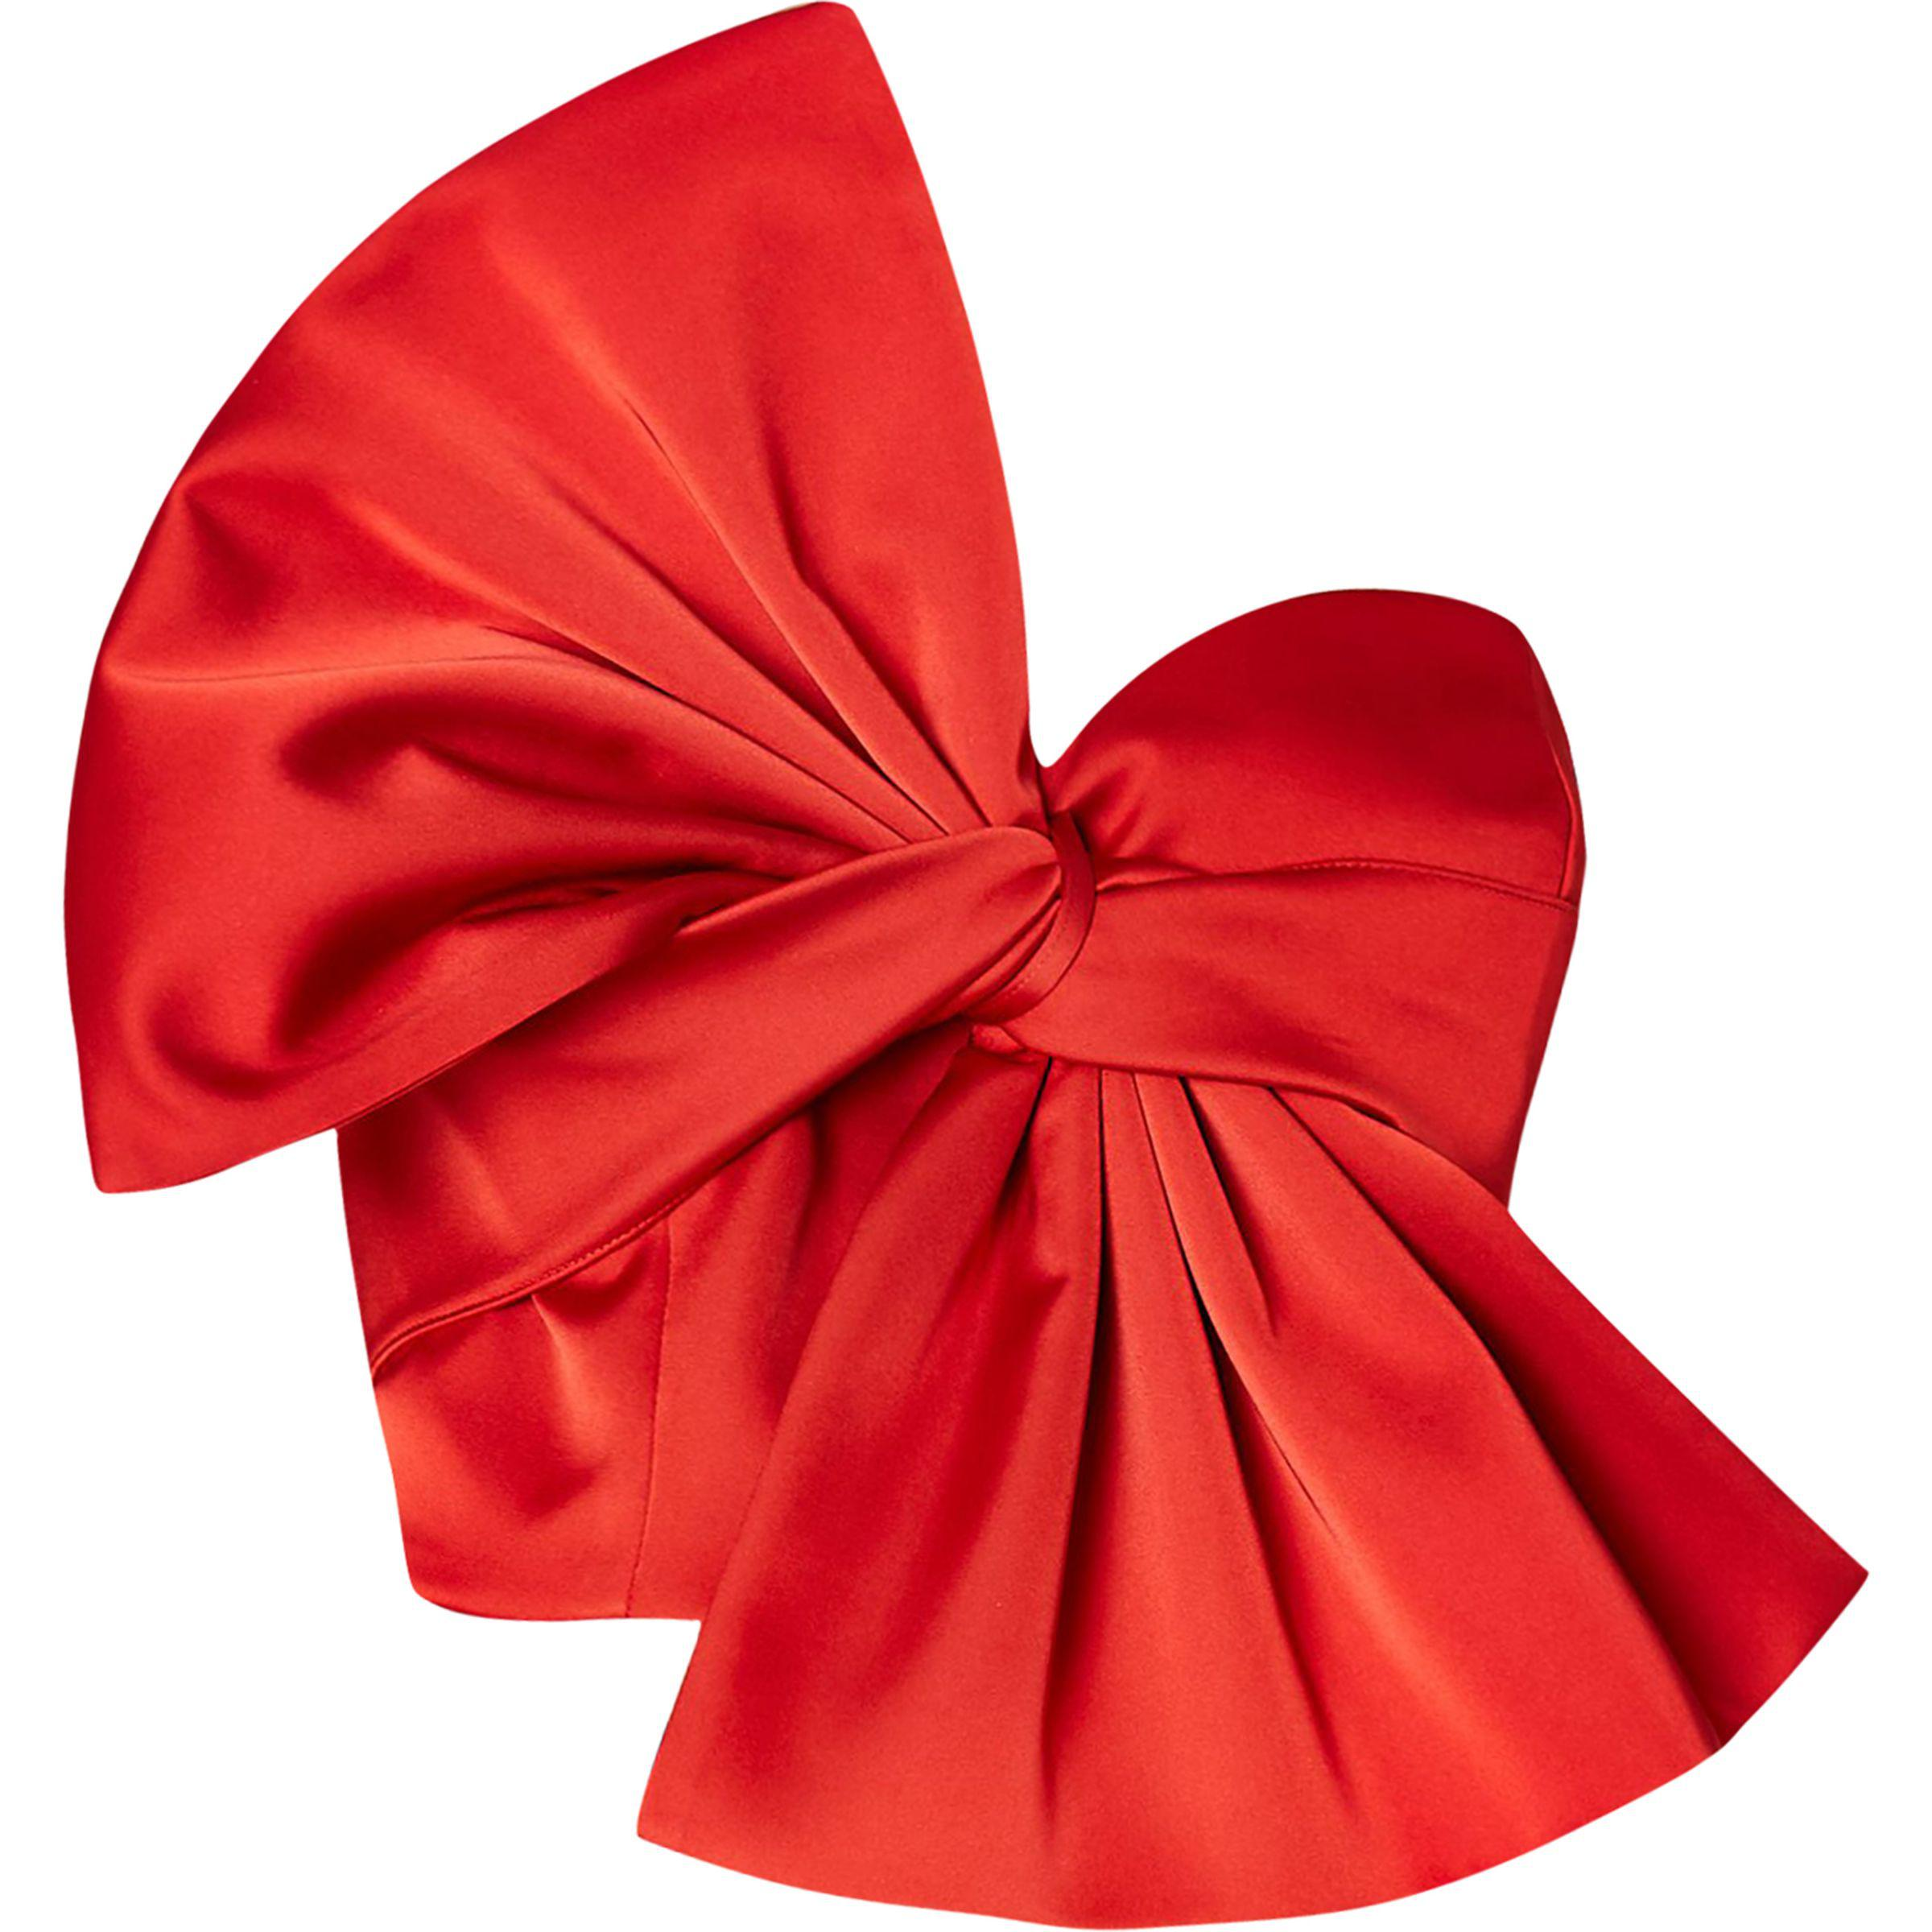 e90f59d55ed78b River Island Red Oversized Bow Bandeau Satin Crop Top in Red - Lyst